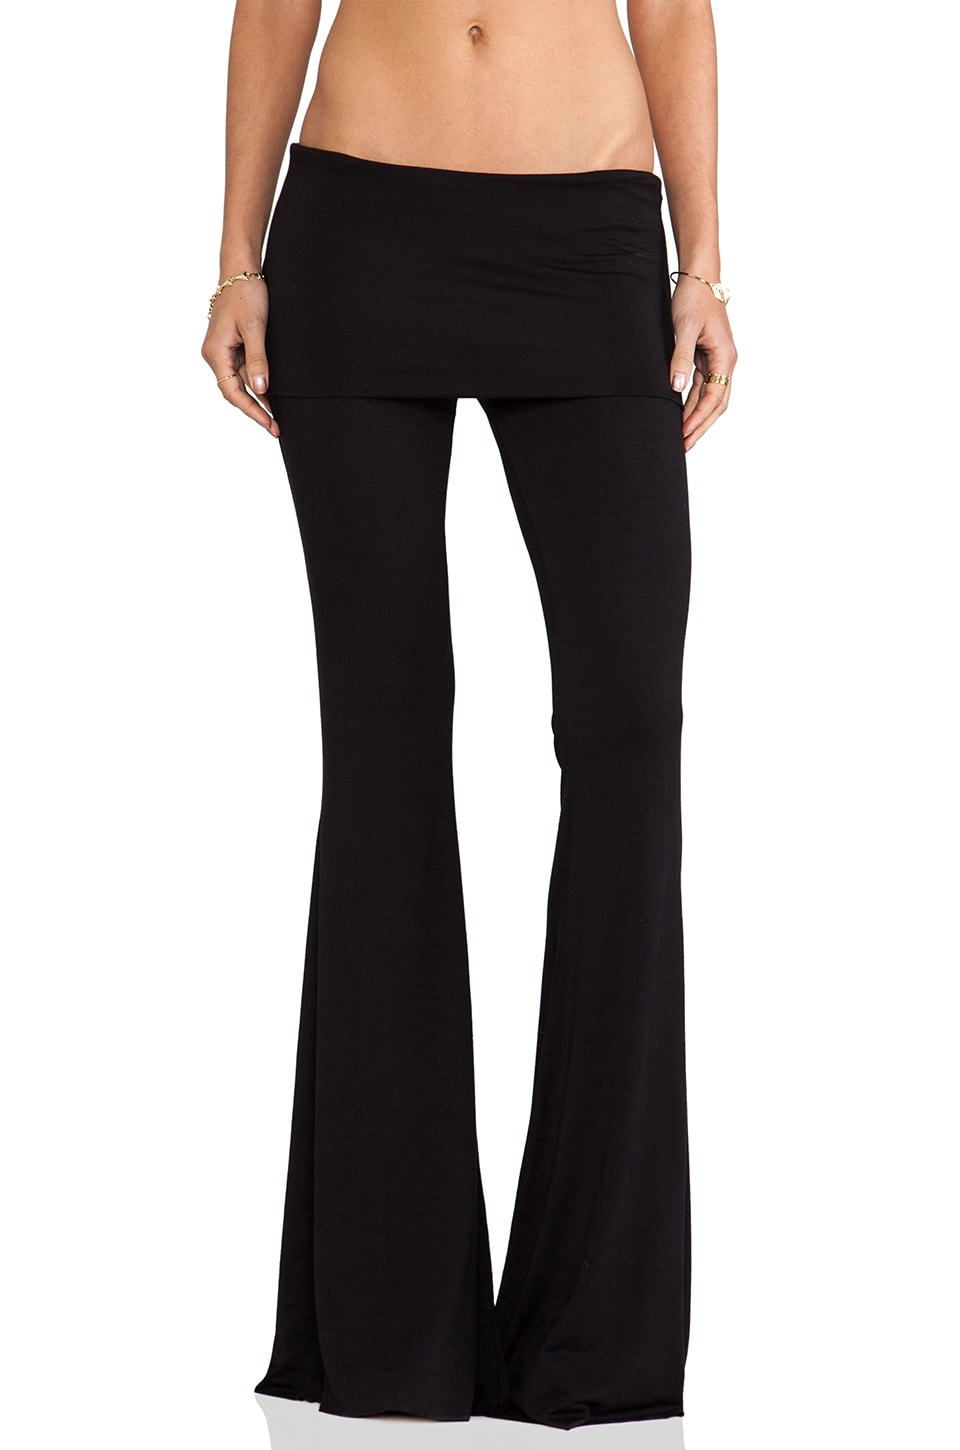 Saint Grace Ashby Pants in Black